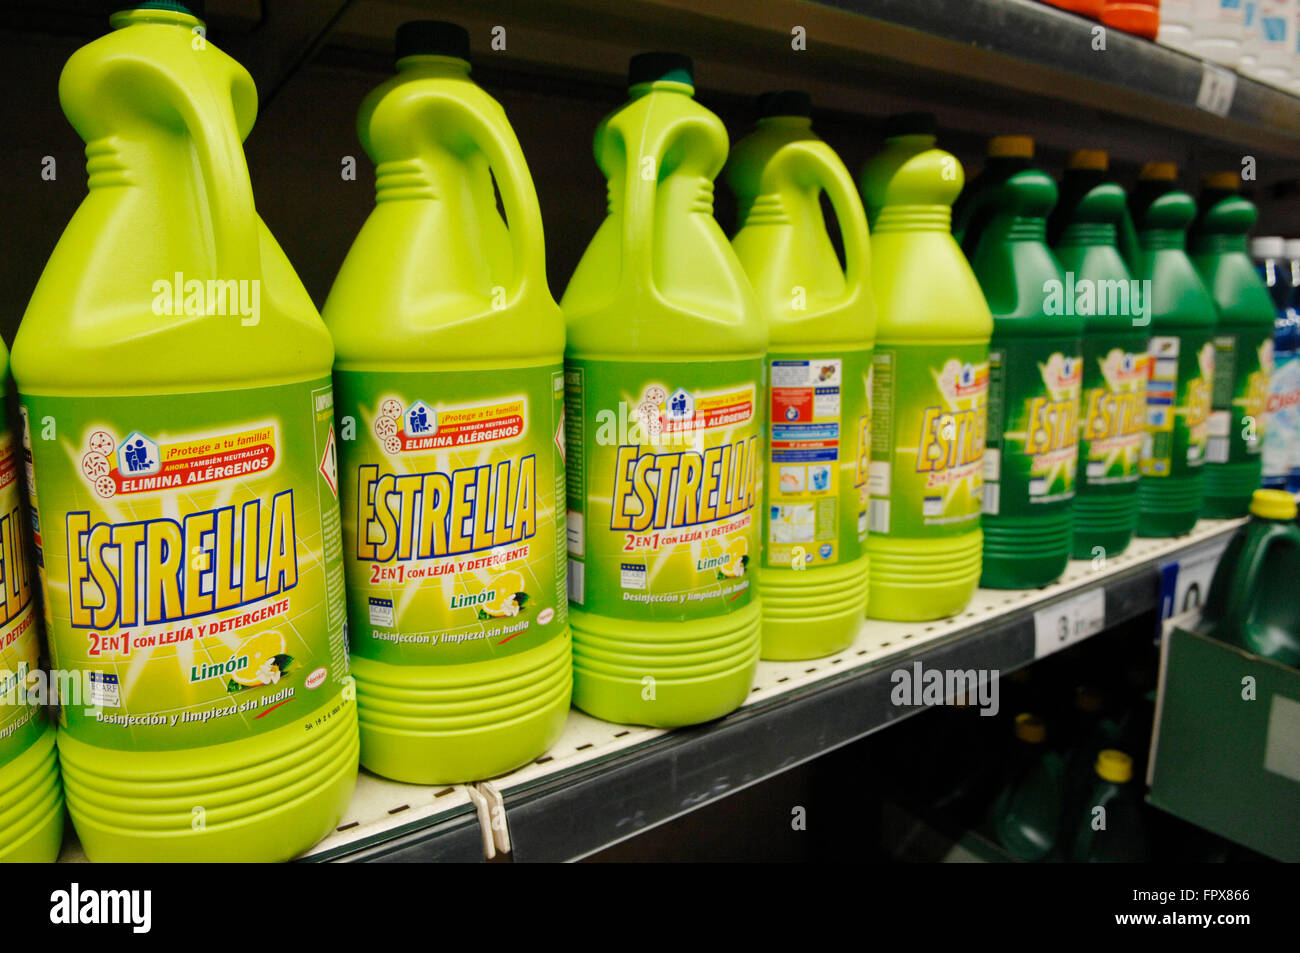 Estrella Bleach 1,5L Lemon containers on display in a Carrefour Supermarket Malaga Spain. - Stock Image